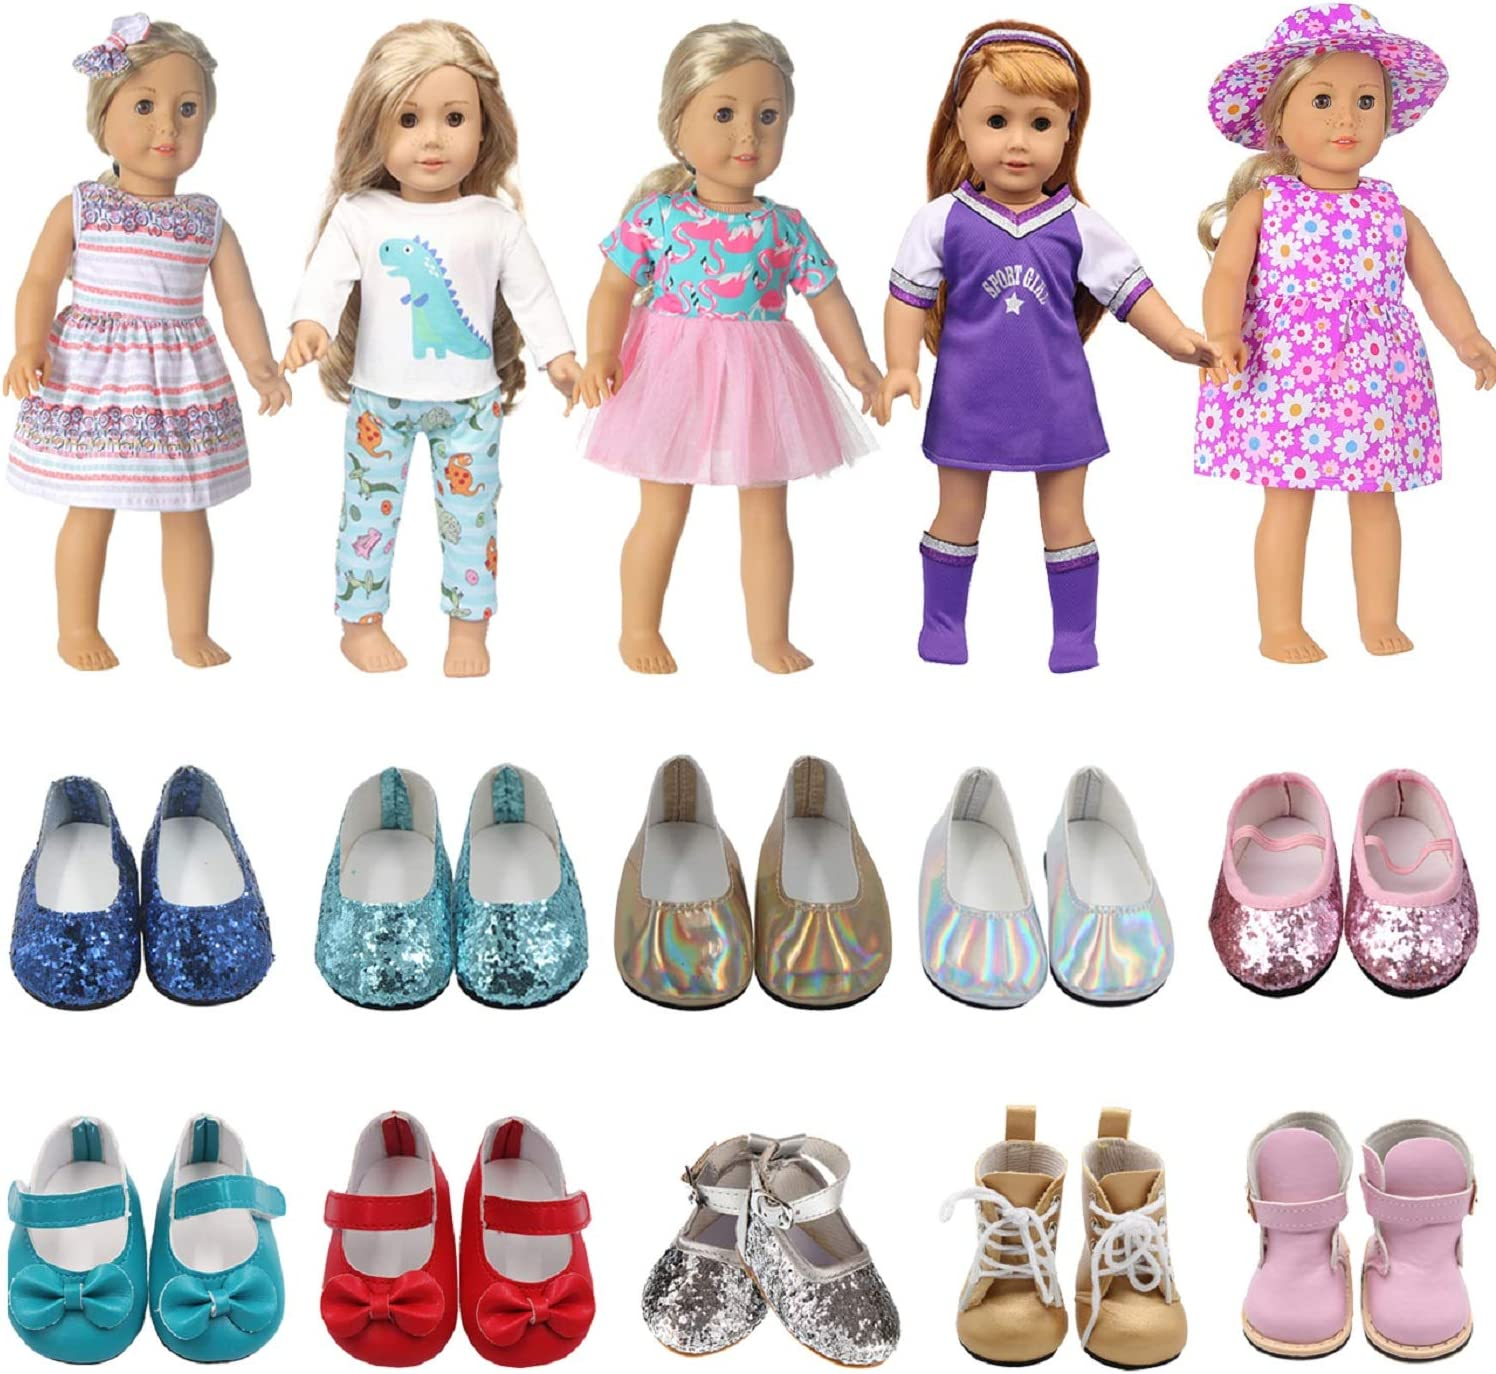 ReeRaa American 18 inch Doll Clothes Everyday Set Recommendation 5 = A surprise price is realized 7